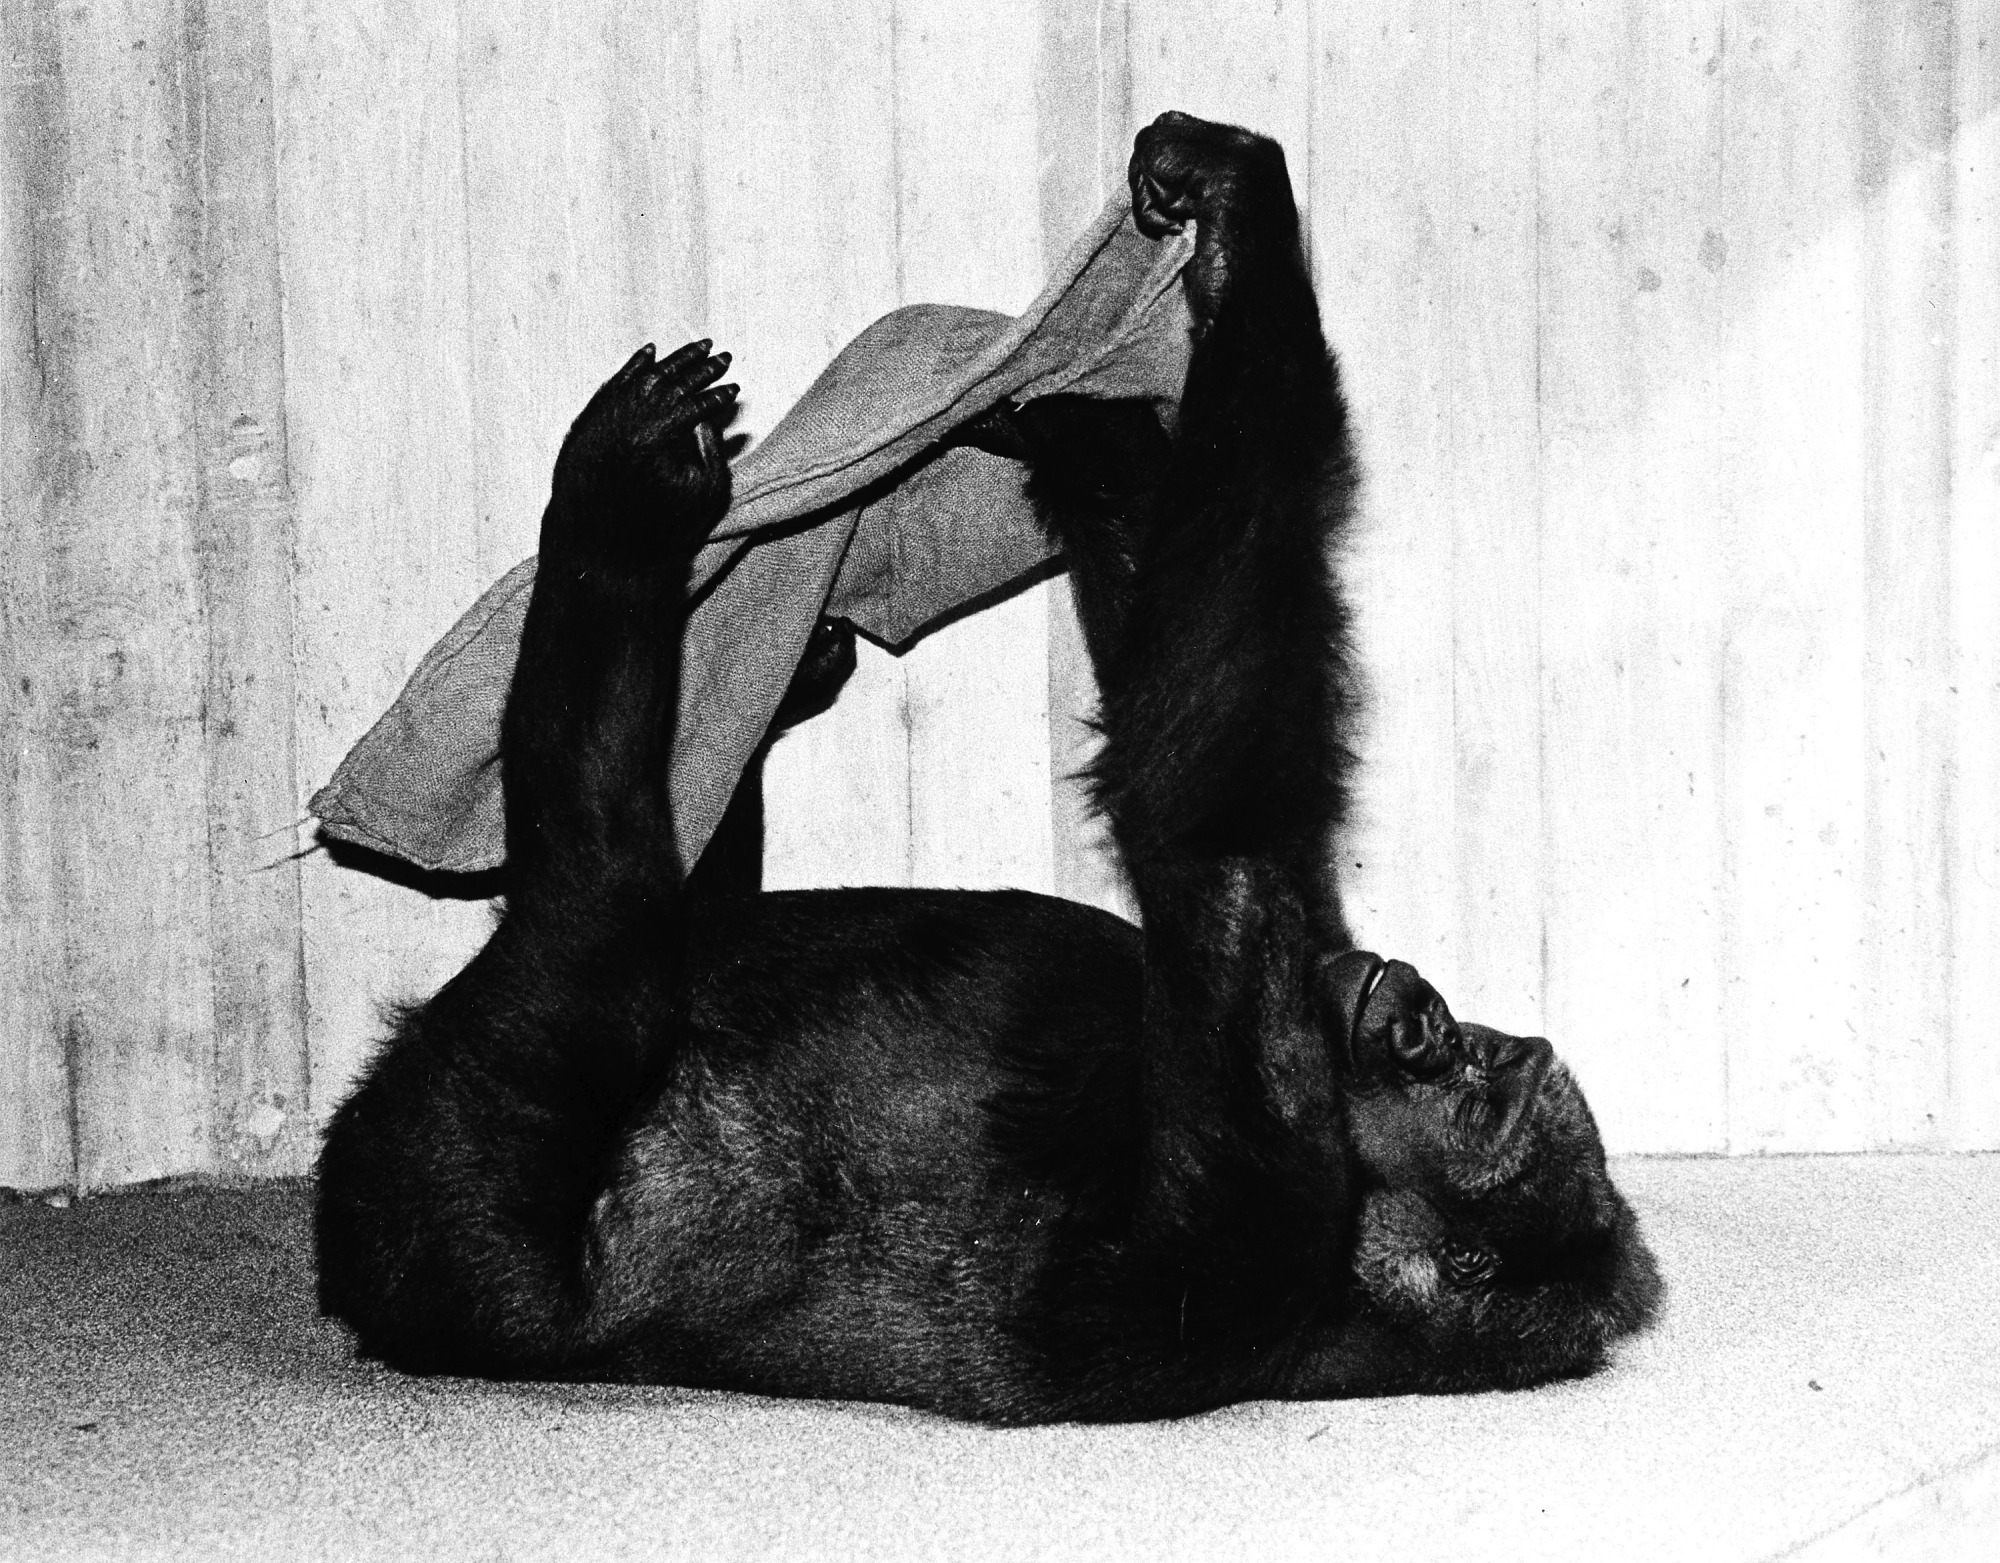 NZP Gorilla Femelle Plays with Burlap Sack